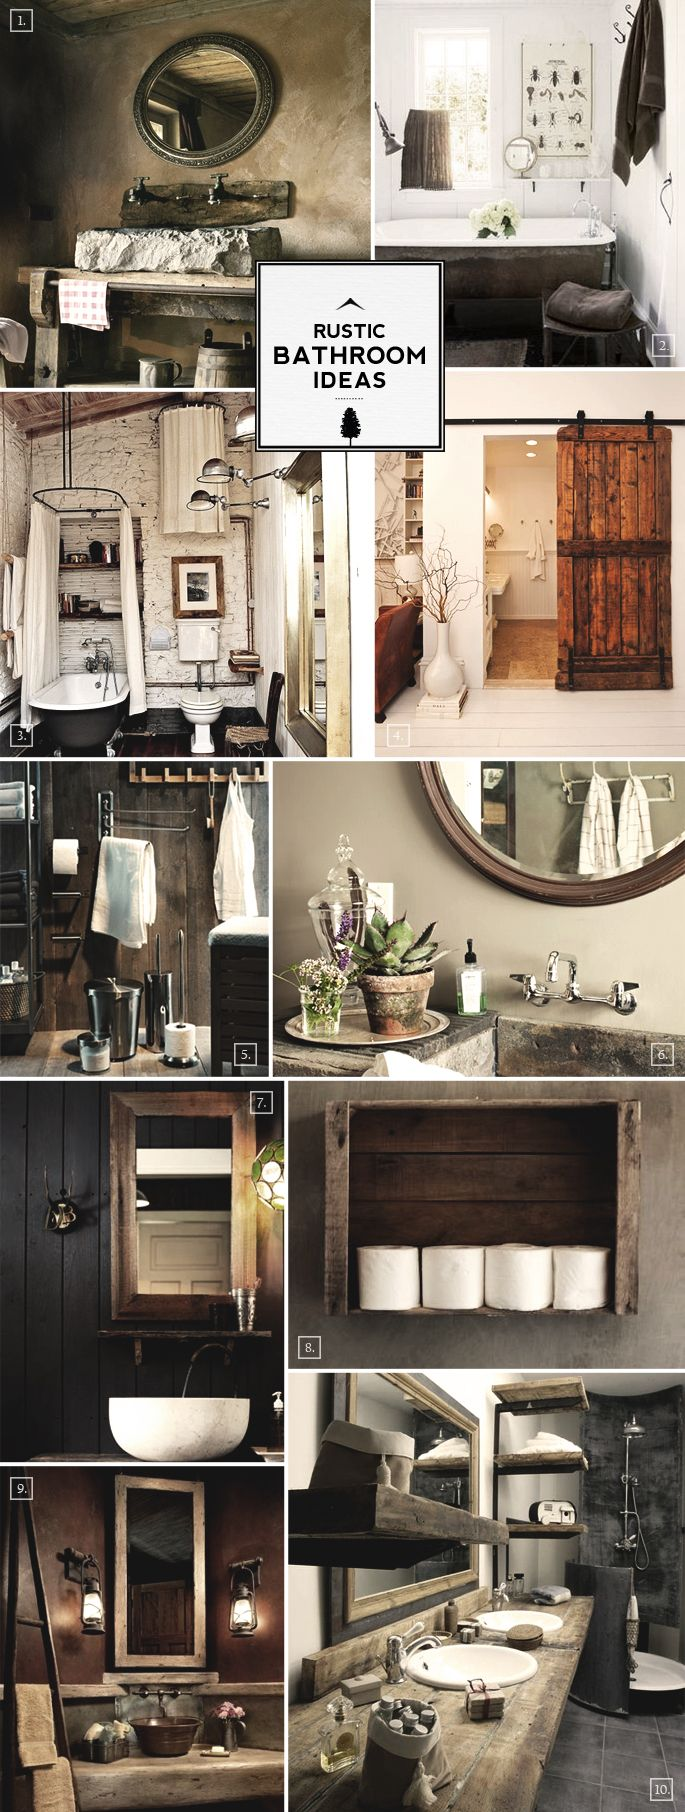 Rustic Chic Bathroom Decor rustic bathroom ideas and decor tips | rustic bathrooms, barn